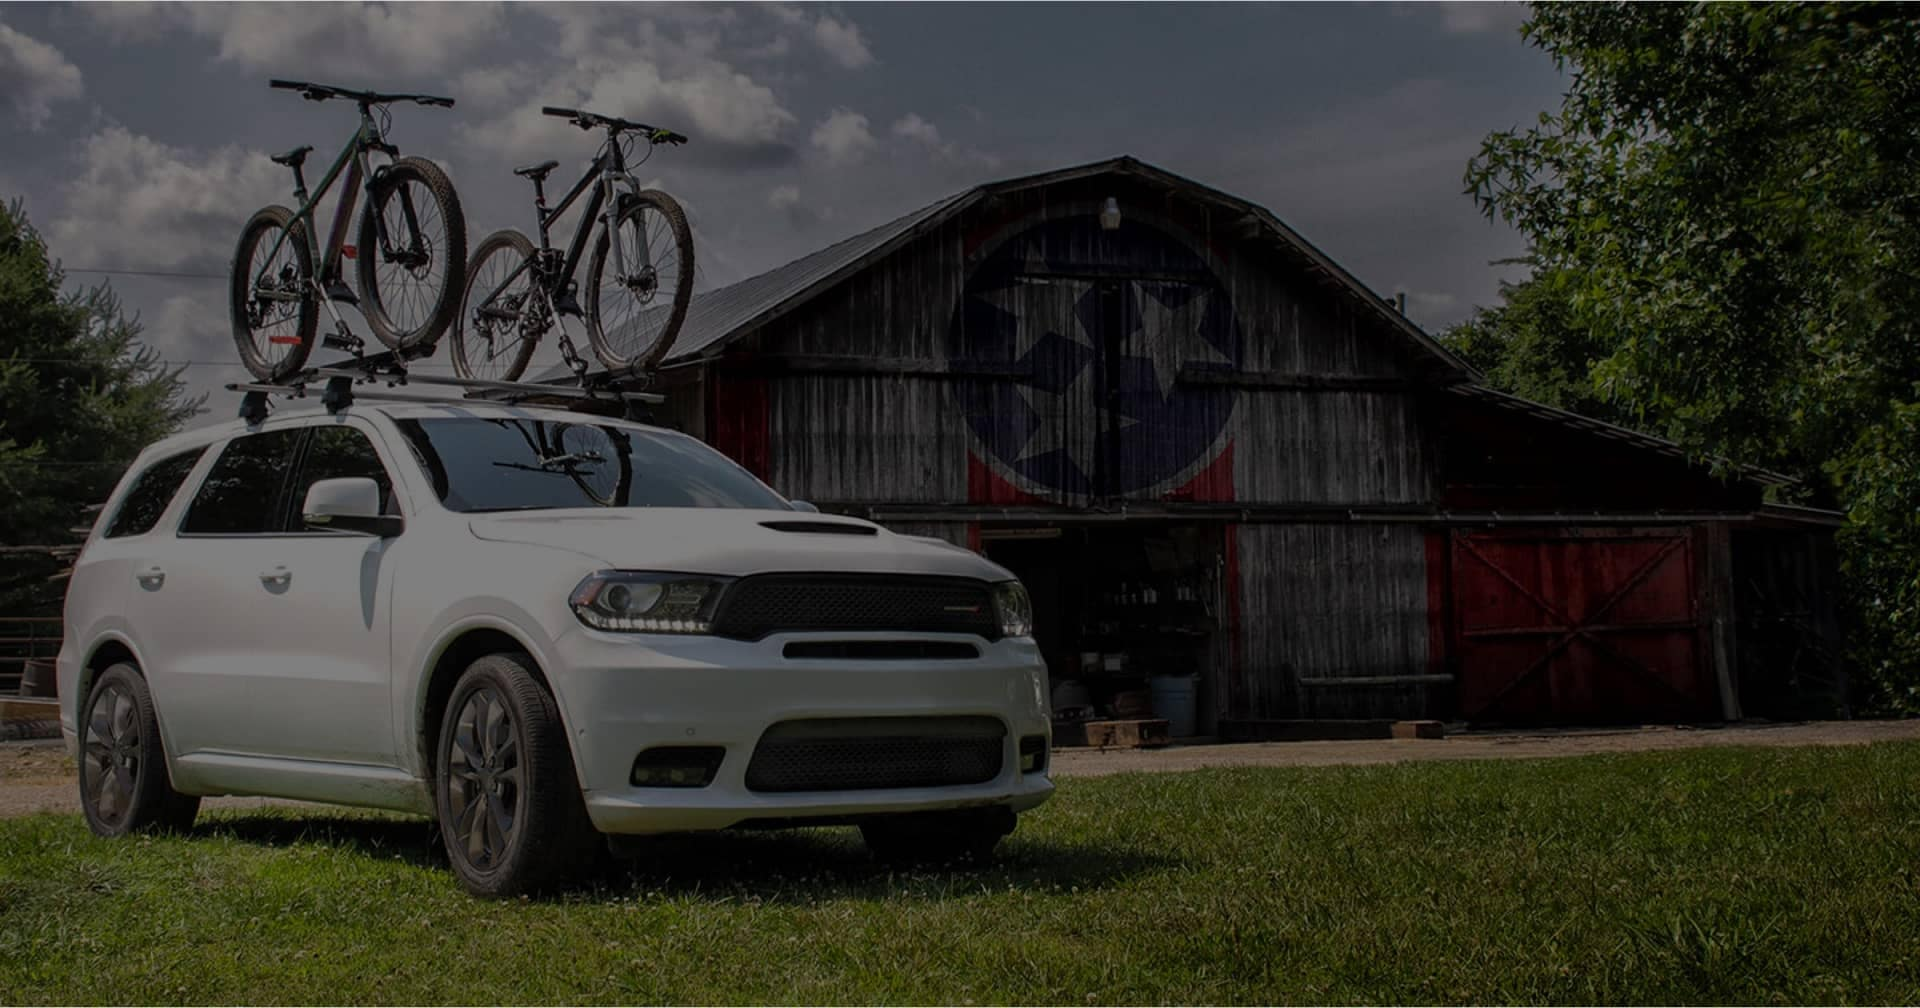 dodge suv with two bikes on top parked a lawn with a barn garage behind